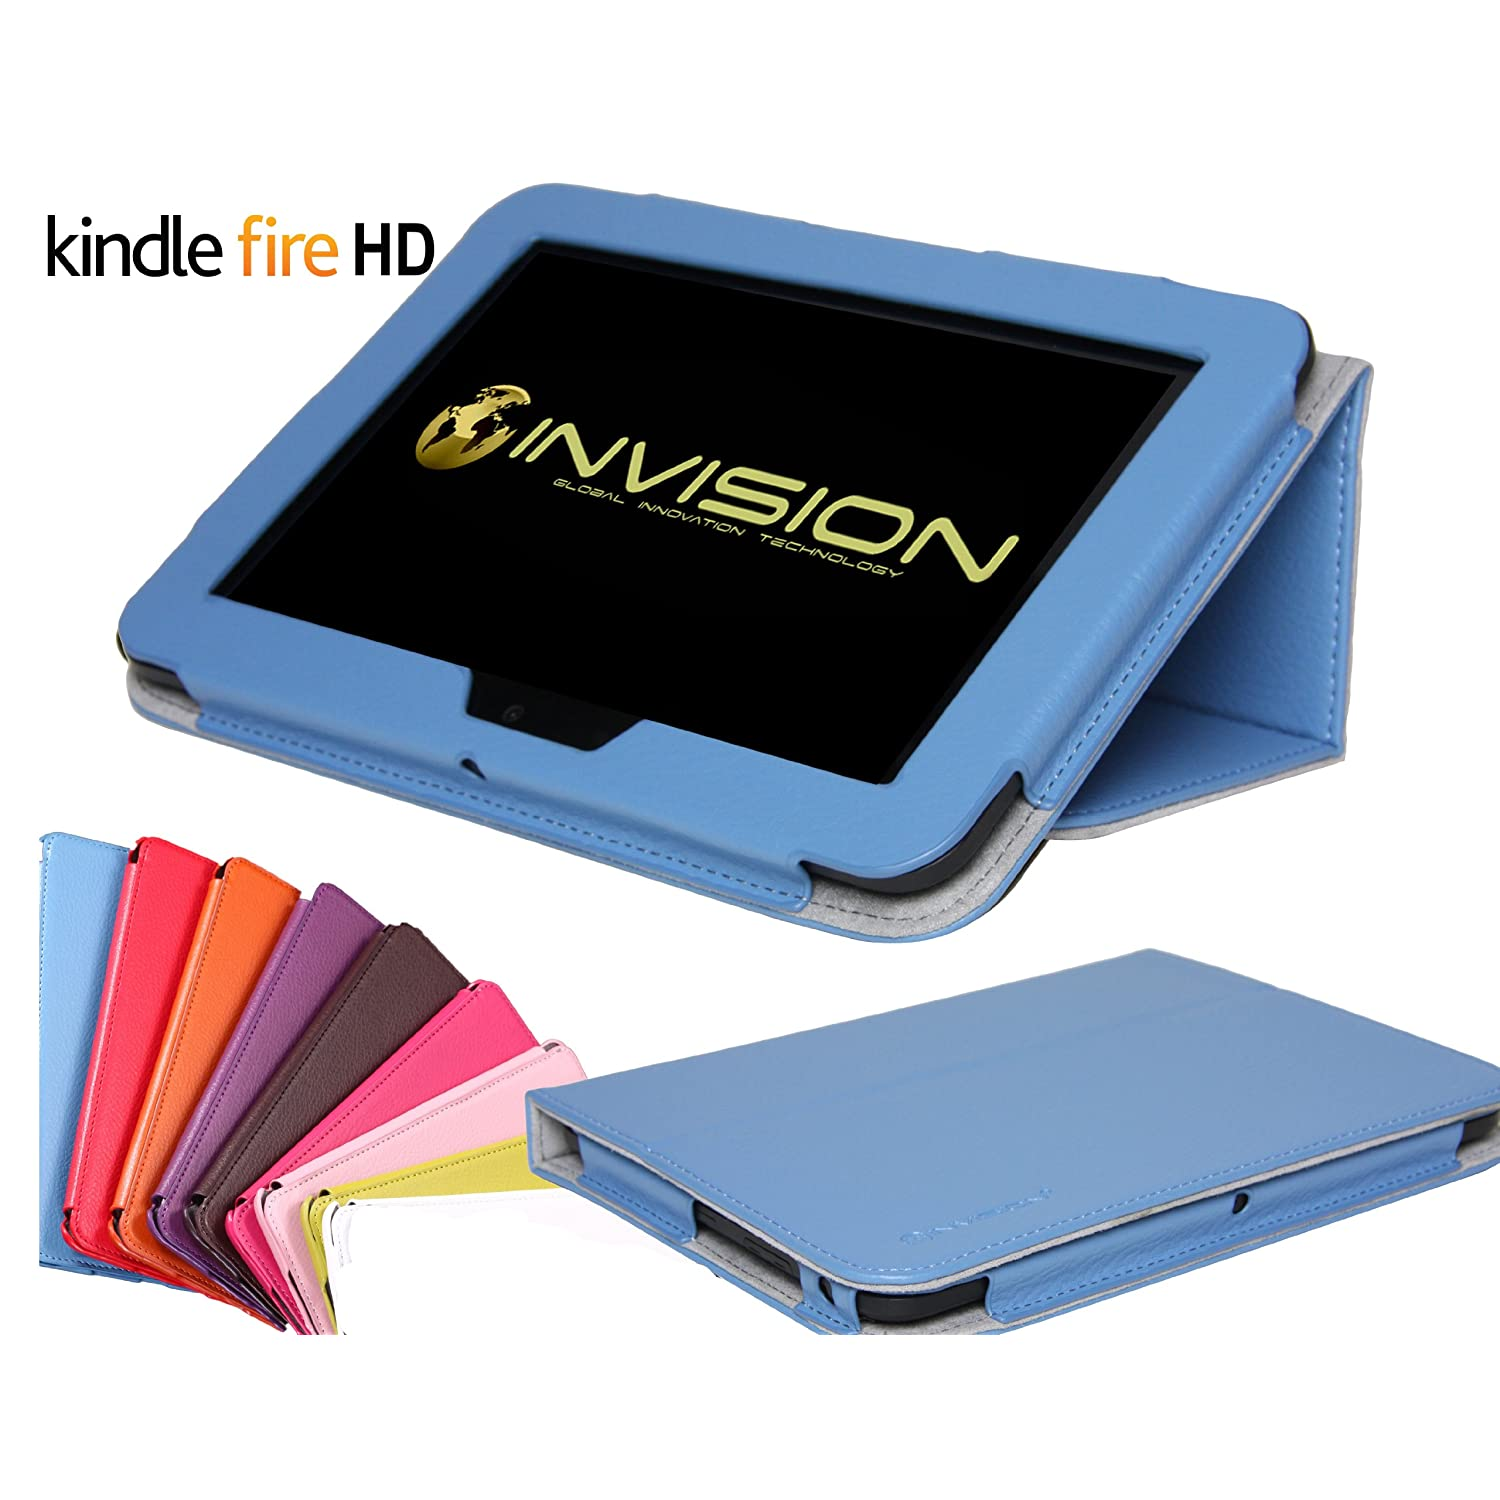 Invision Kindle Fire HD compact Case Full Grade leather (PU) with Smooth Micro-Fibre Inner Lining - WITH BUILT IN AUTO WAKE / SLEEP FUNCTION & MAGNETIC SECURE CLOSE FRONT COVER